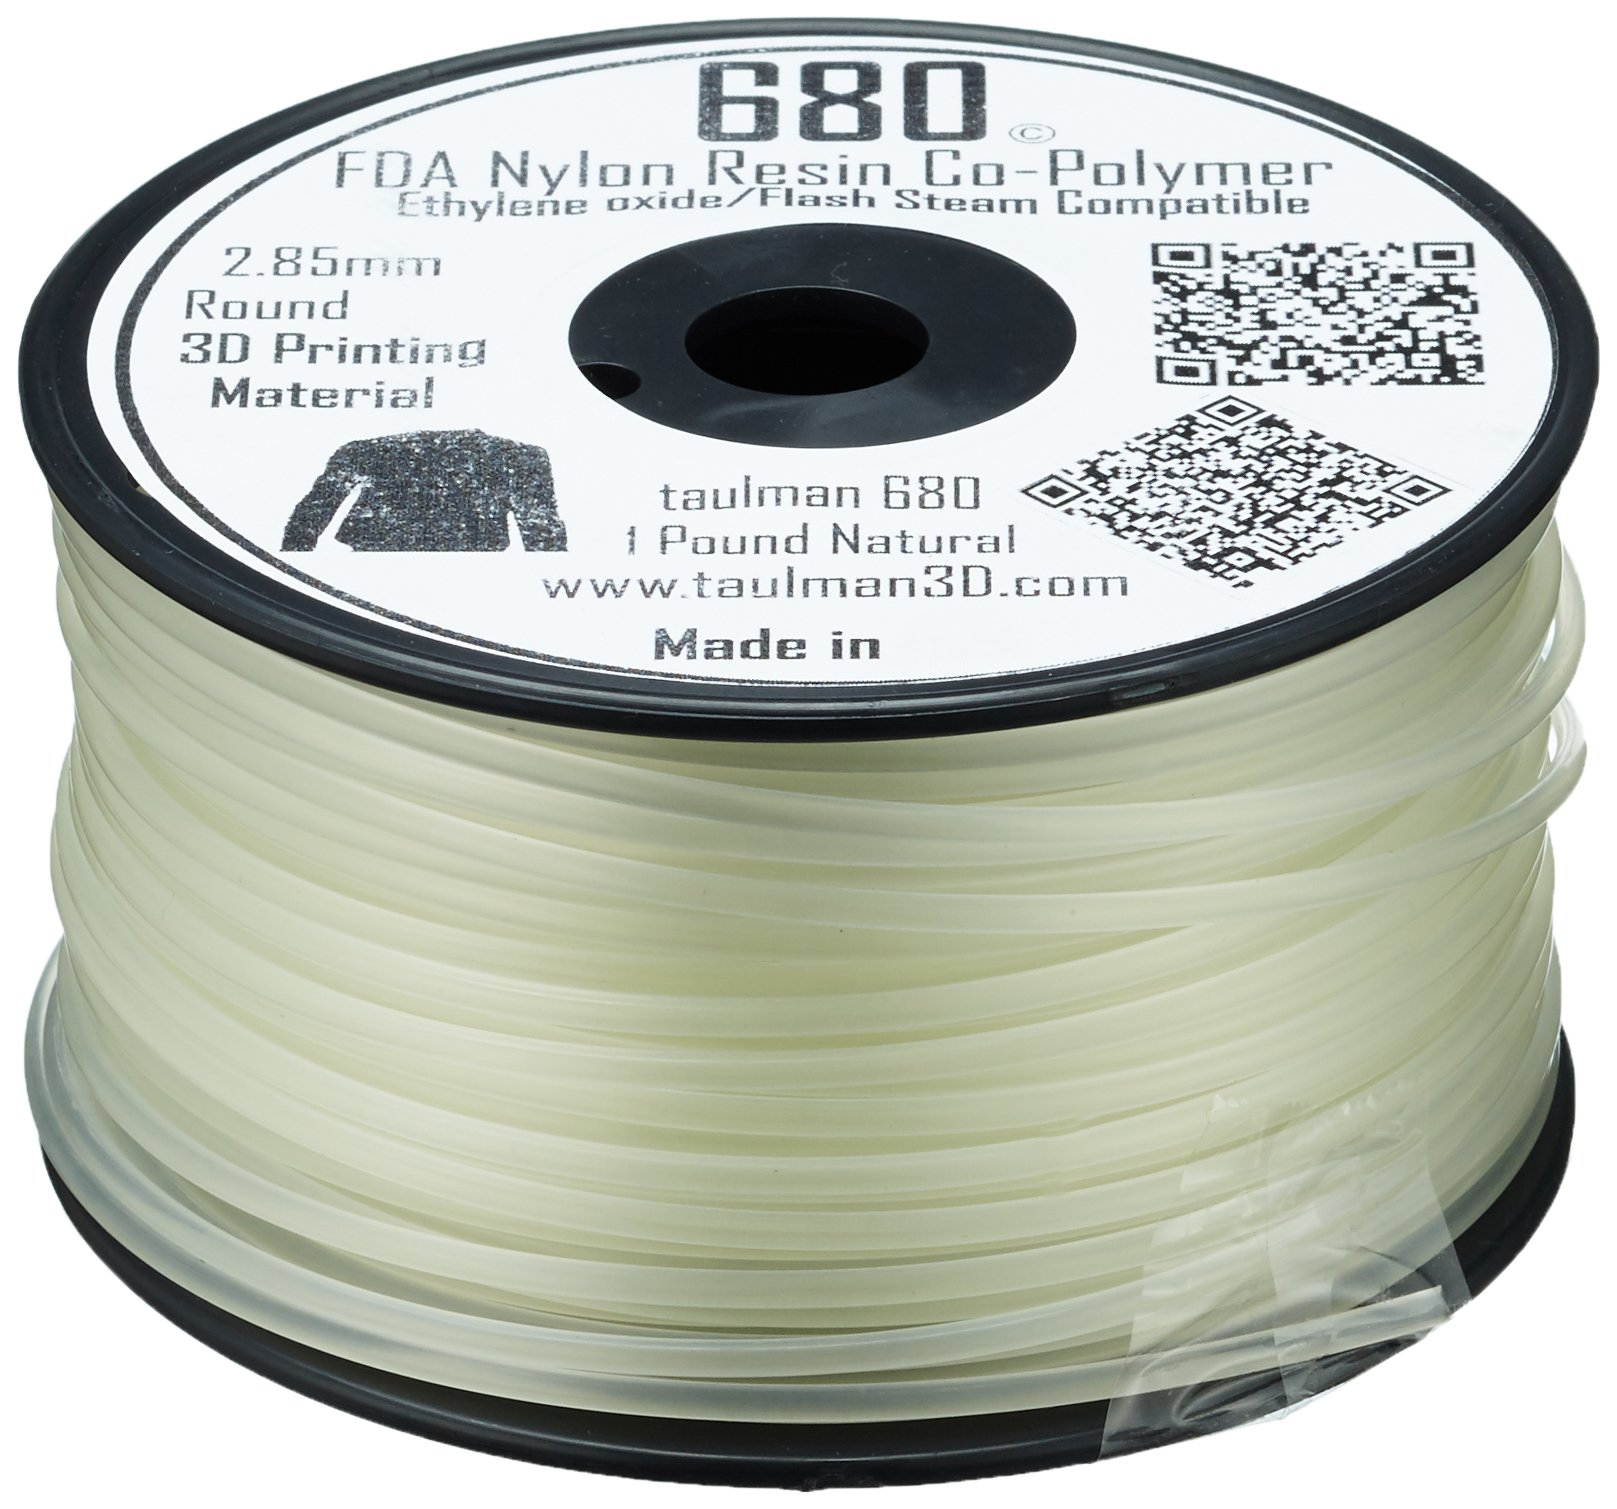 Taulman 10524 Impression Filament, Nylon 680, 2.85 mm, 450 g